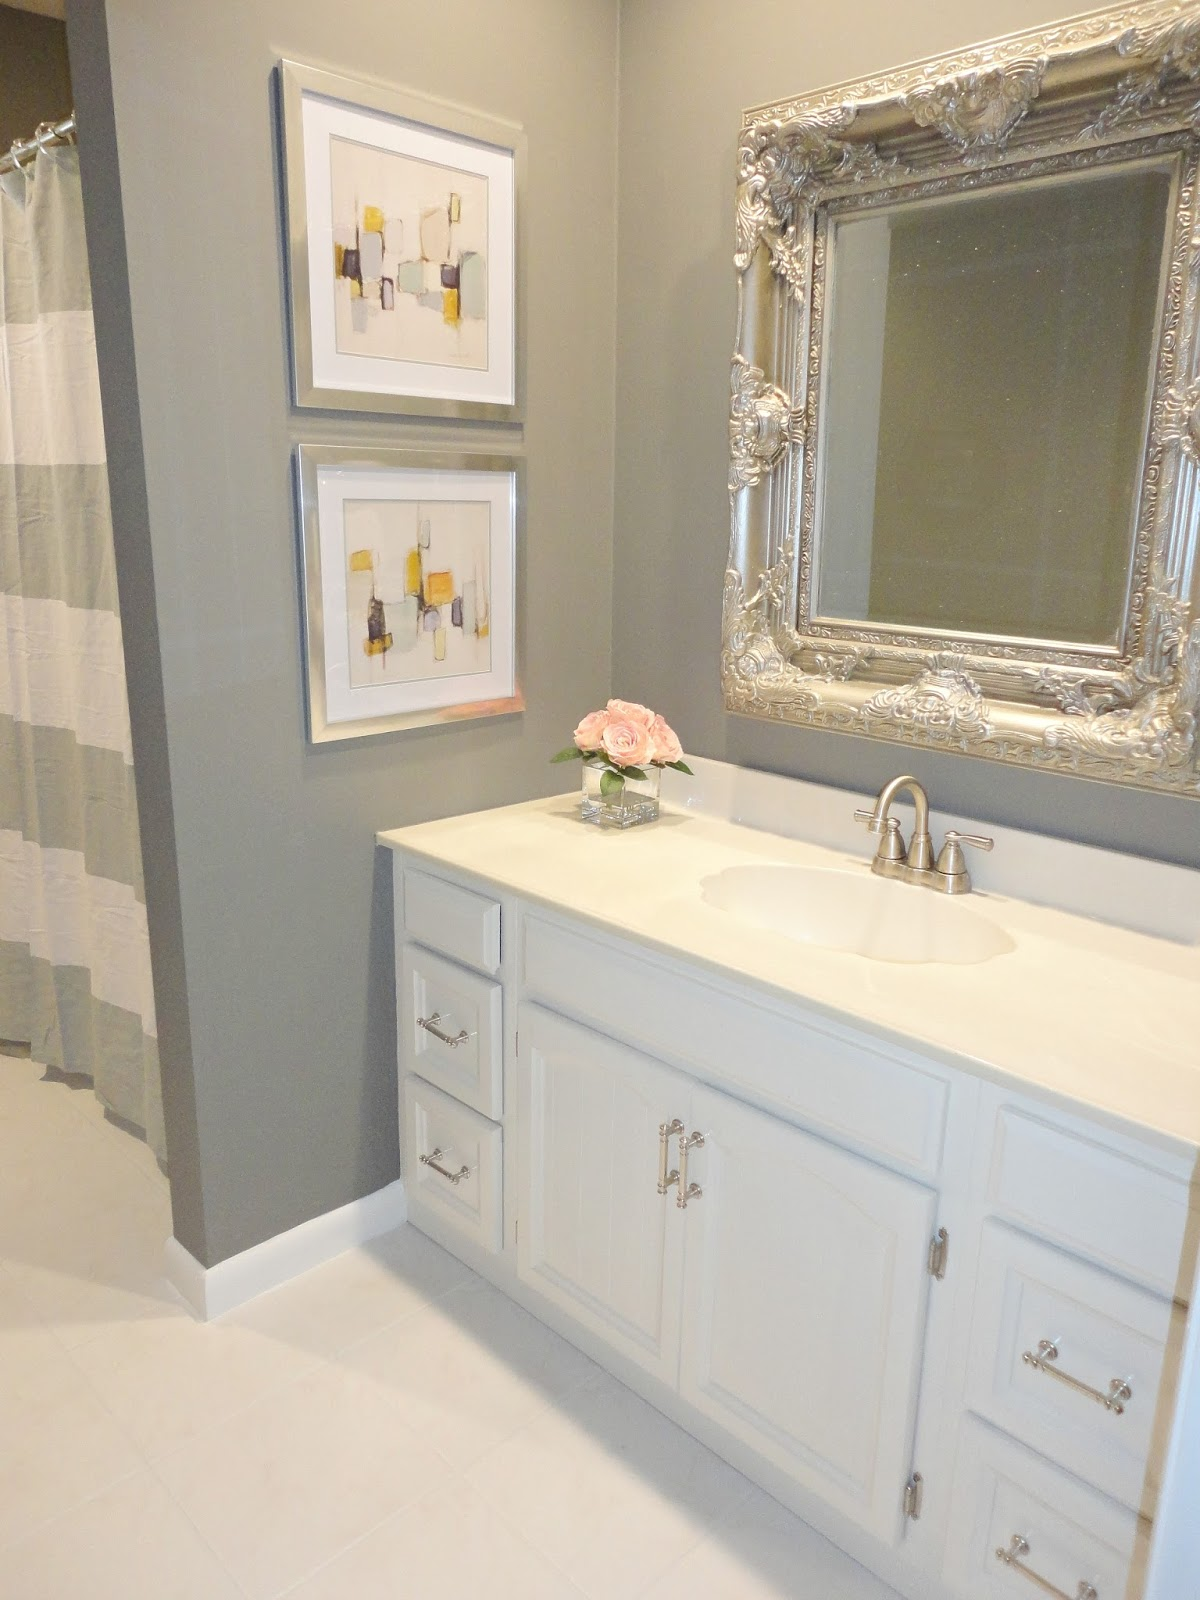 Bathroom Renovation Diy livelovediy: diy bathroom remodel on a budget